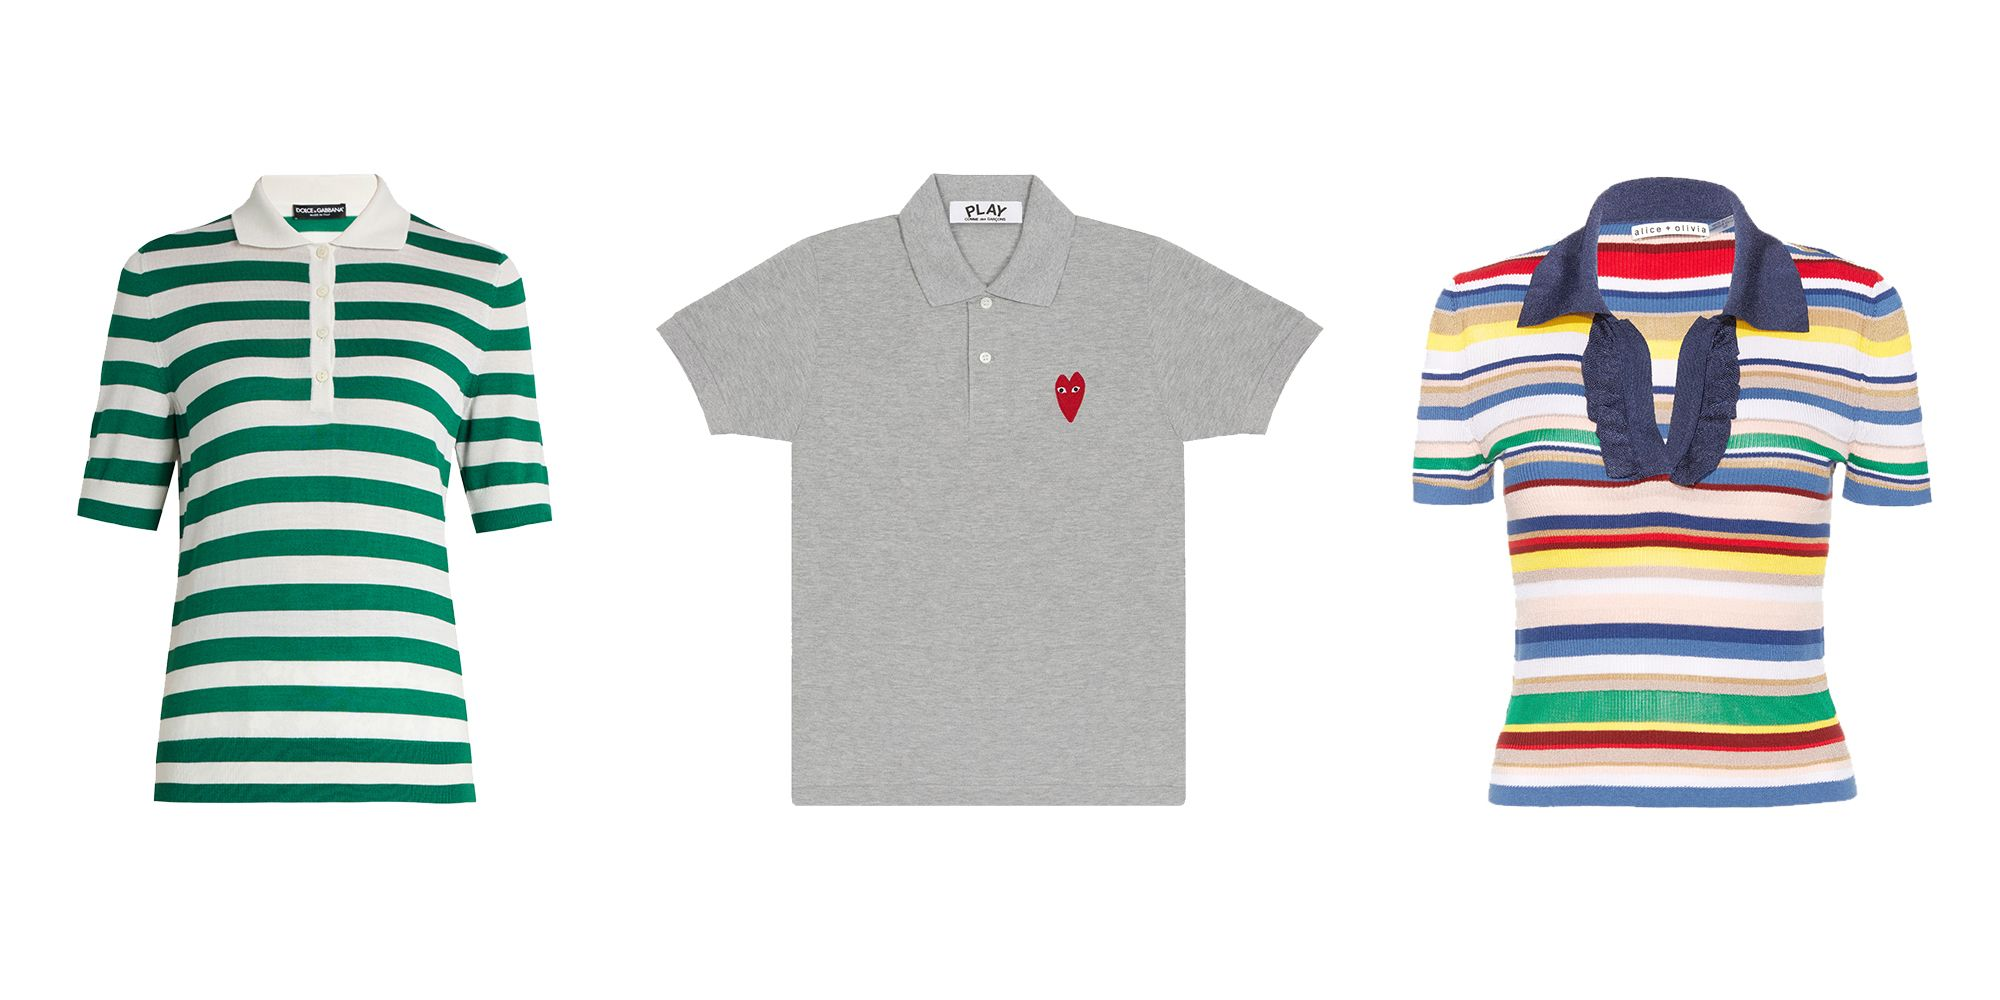 10 Polo Shirts That Should Replace Your Tired T Shirts